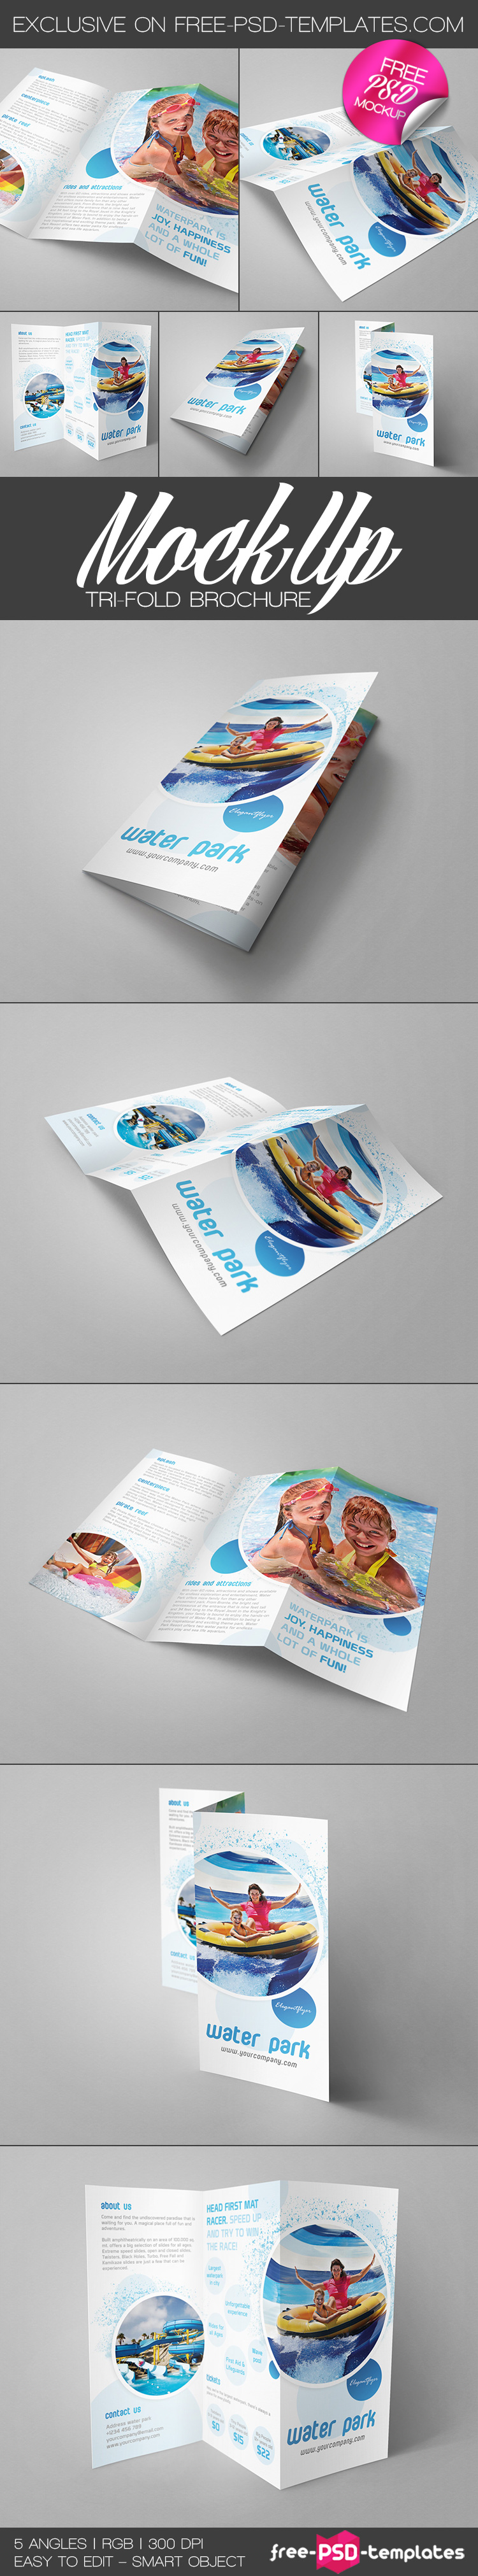 free psd brochure template download - mockup trifold brochure free mockup template in psd